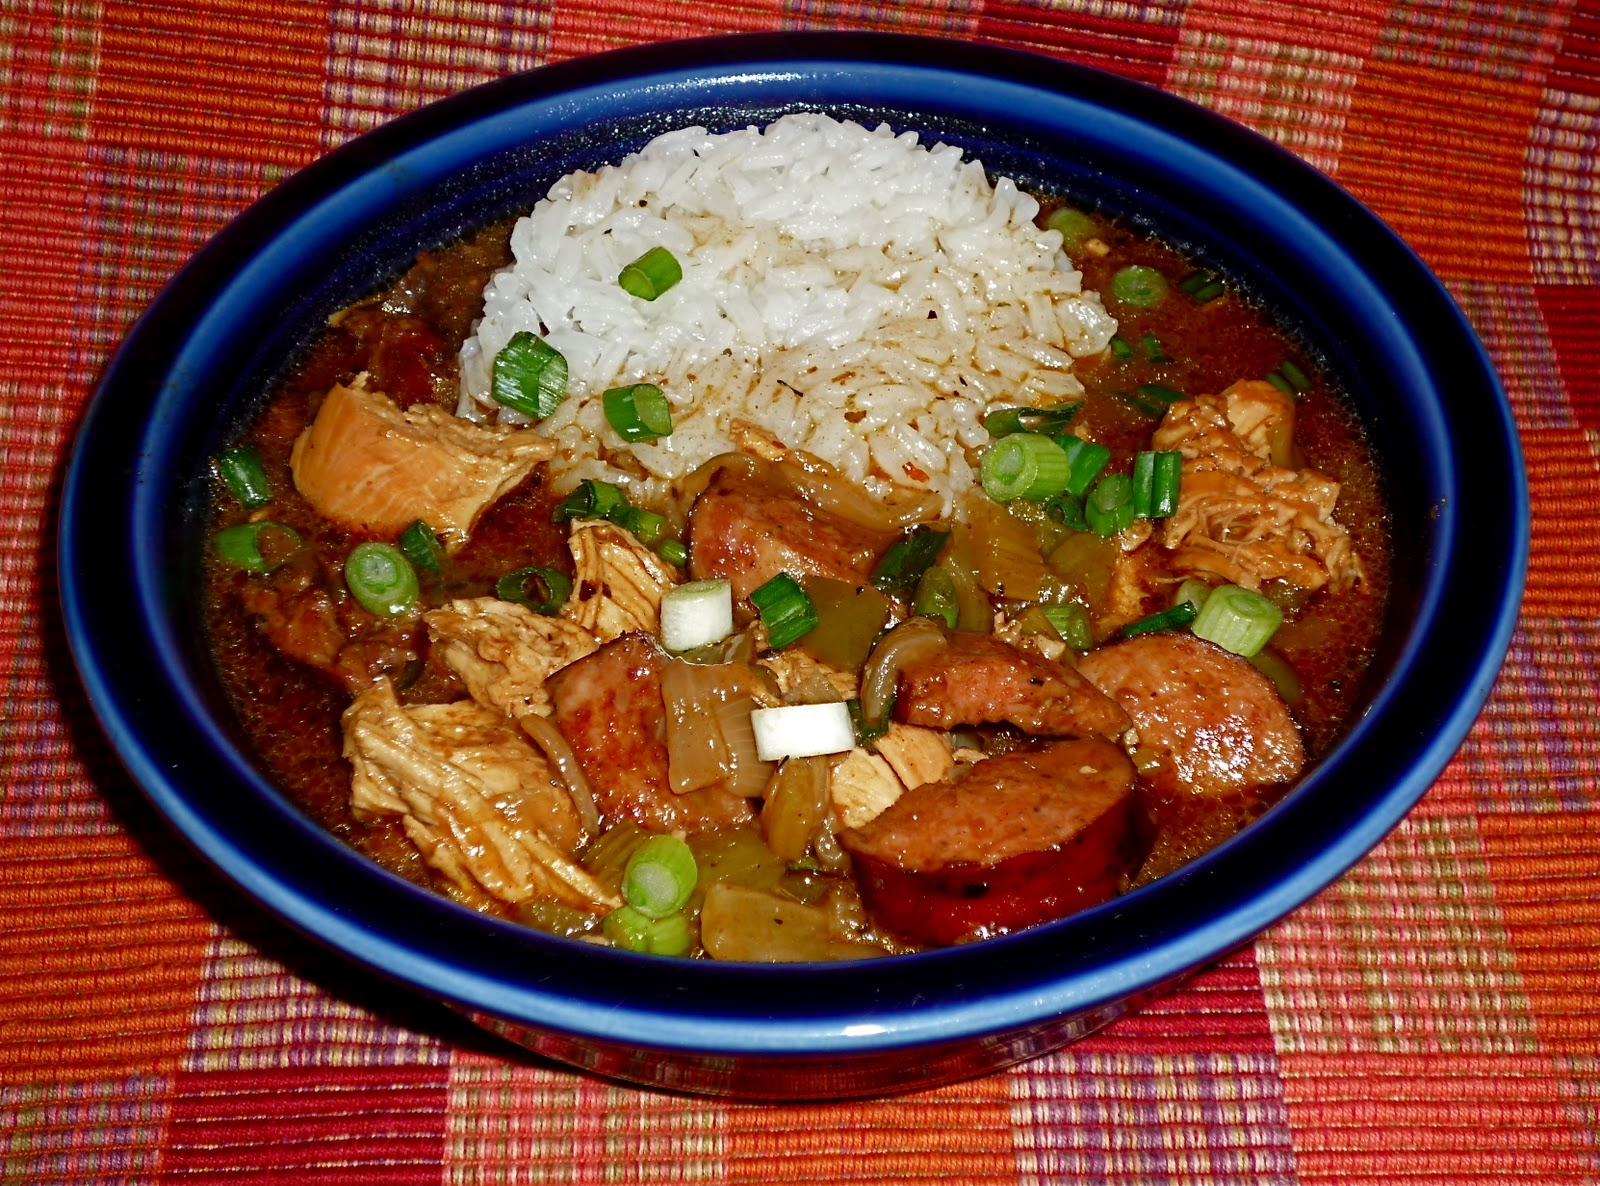 Easy gumbo roux recipe